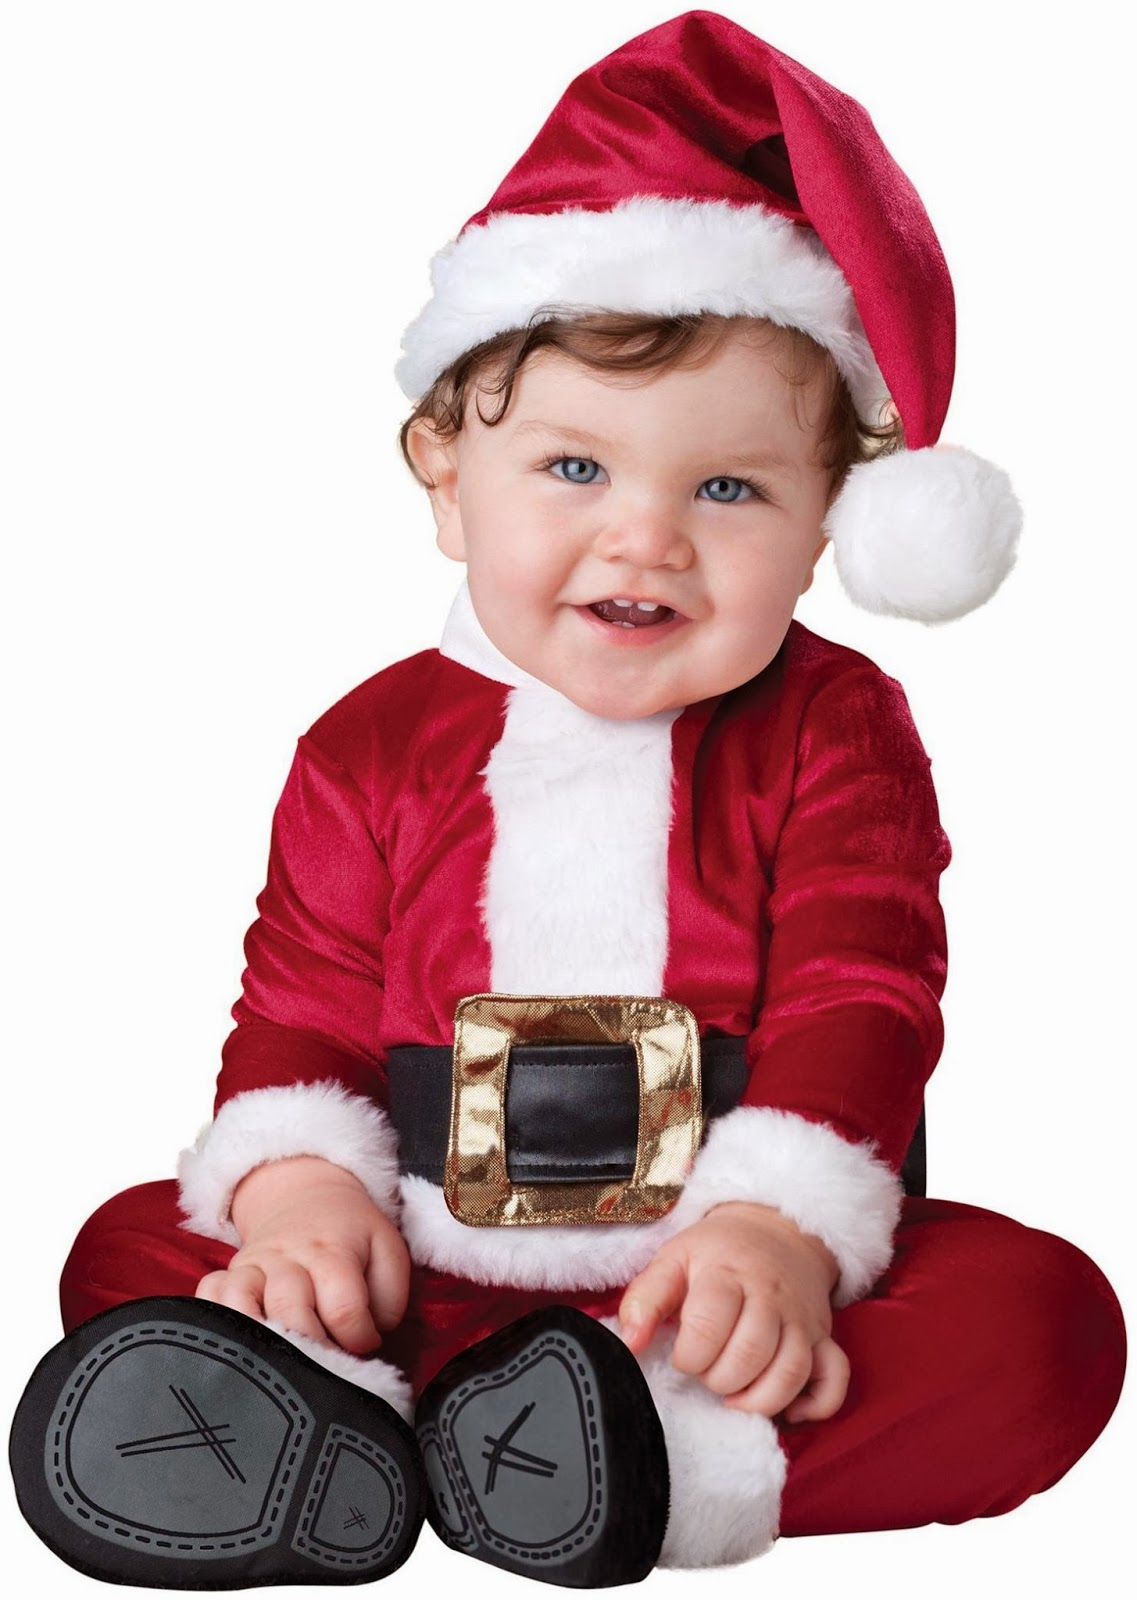 We carry Santa suits to match any budget or personality, from basic to professional grade, with options for both males and females! Whatever it is you're looking for, you'll be sure to find it .